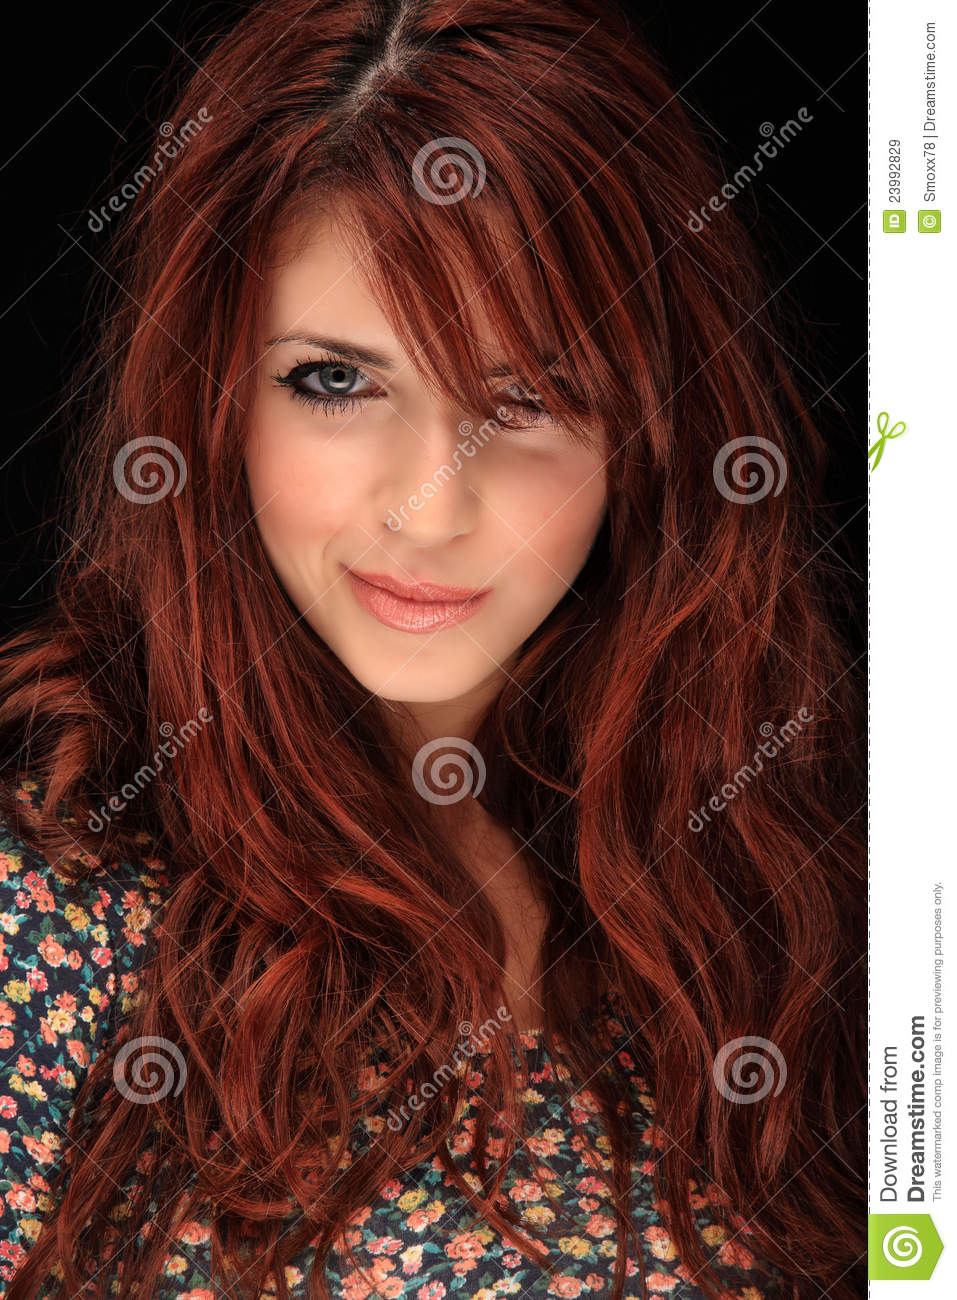 Beautiful Red Hair Girl Stock Image Image Of Studio -7255